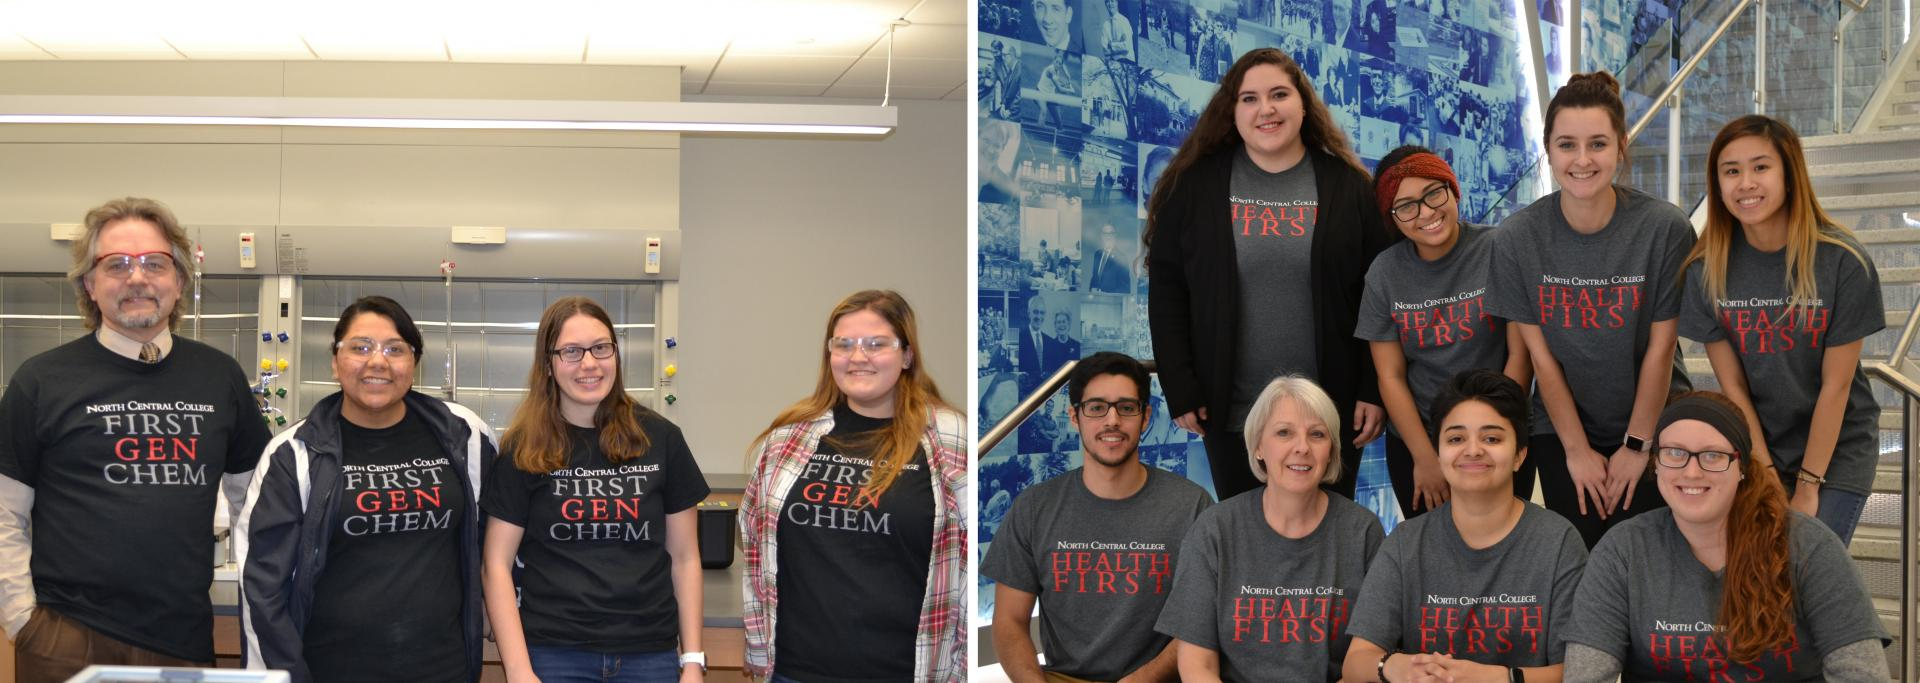 Students in the First Gen Chem and Health First programs with their faculty advisors.